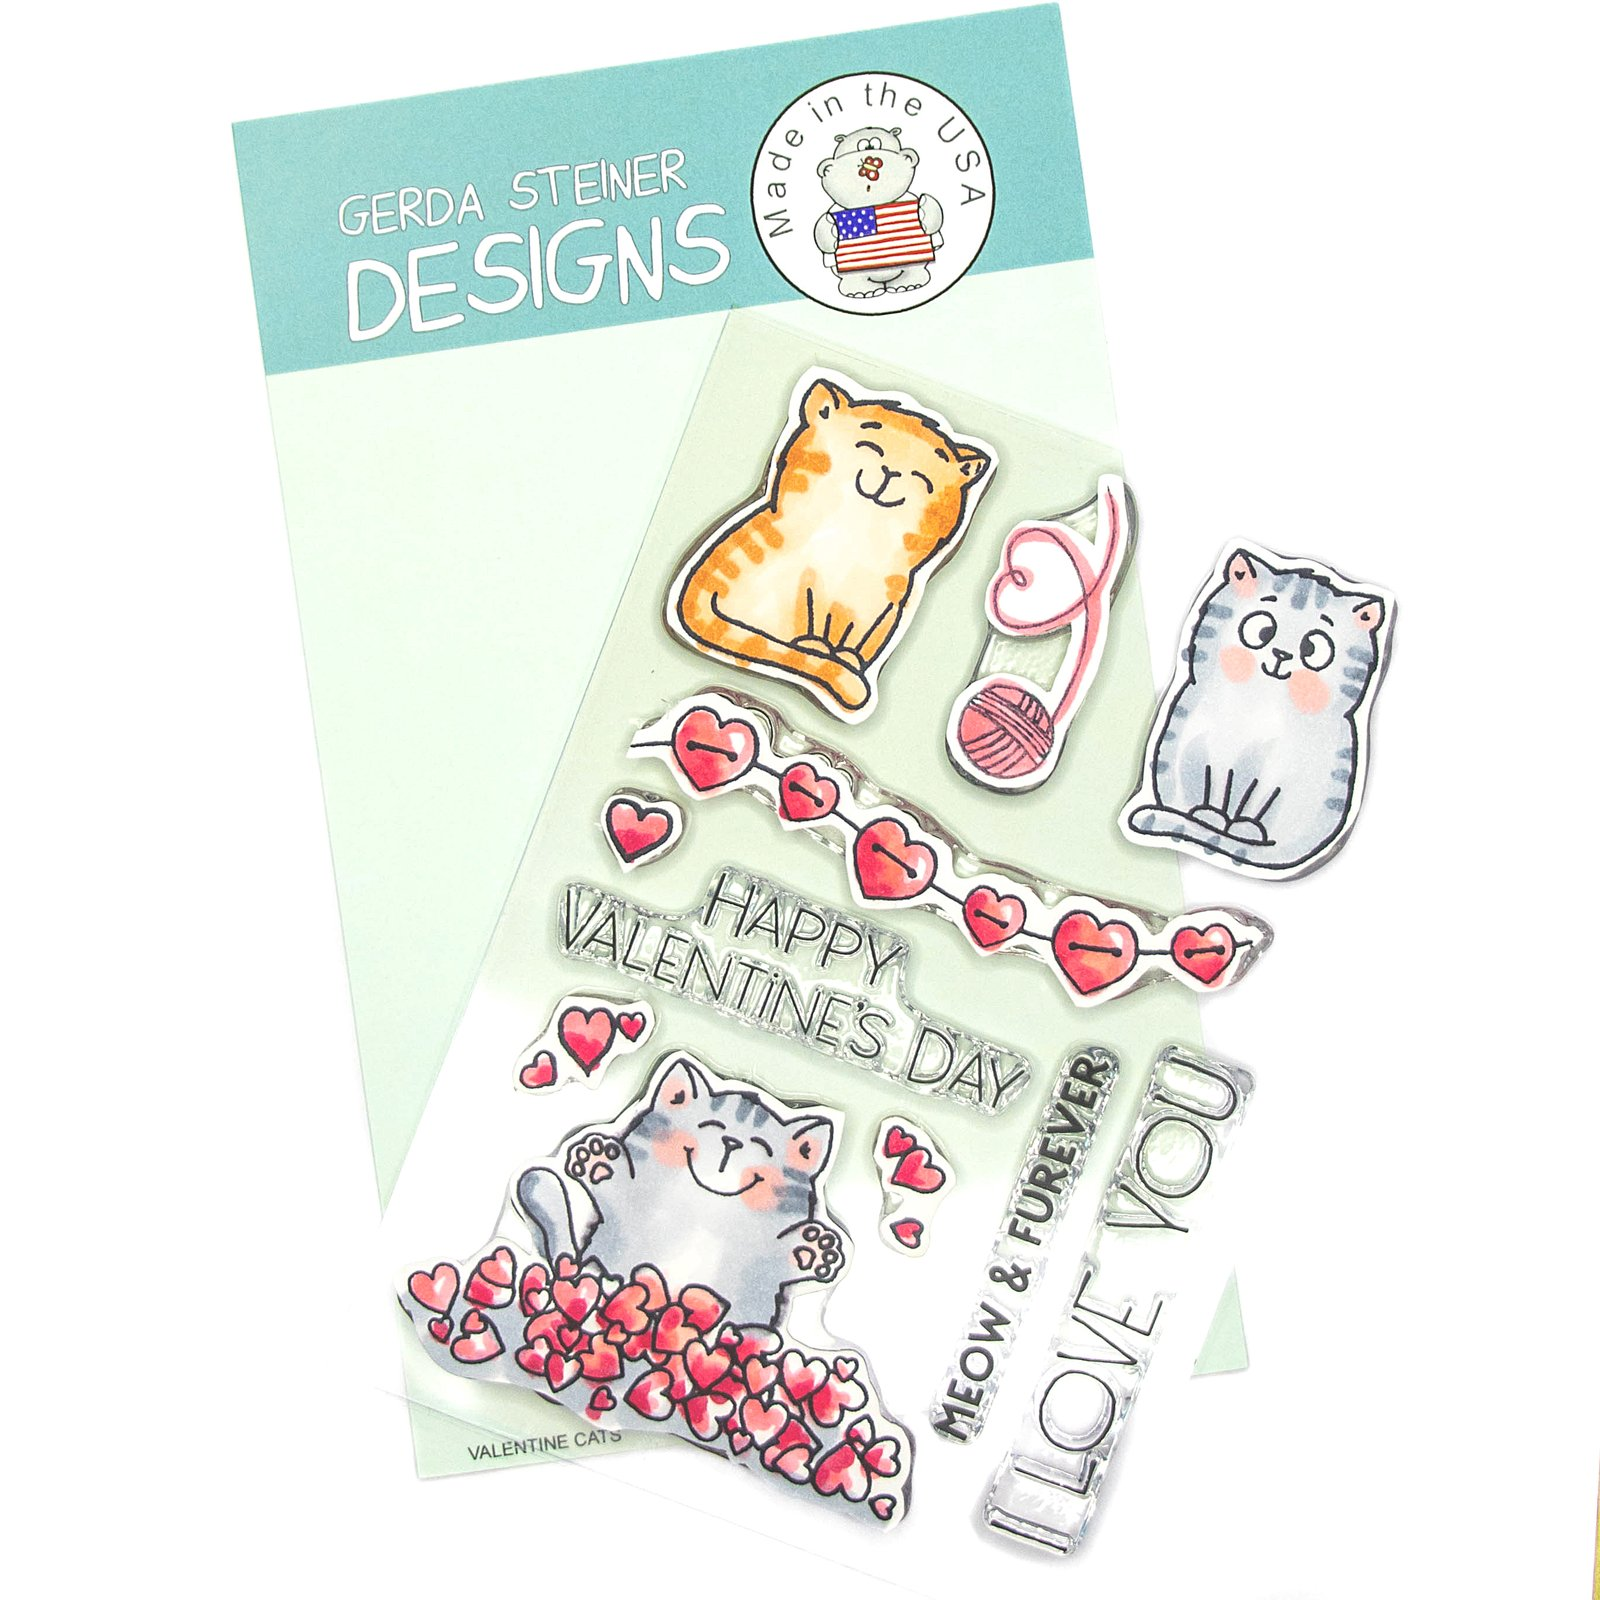 Valentine Cats 4x6 Clear Stamp Set